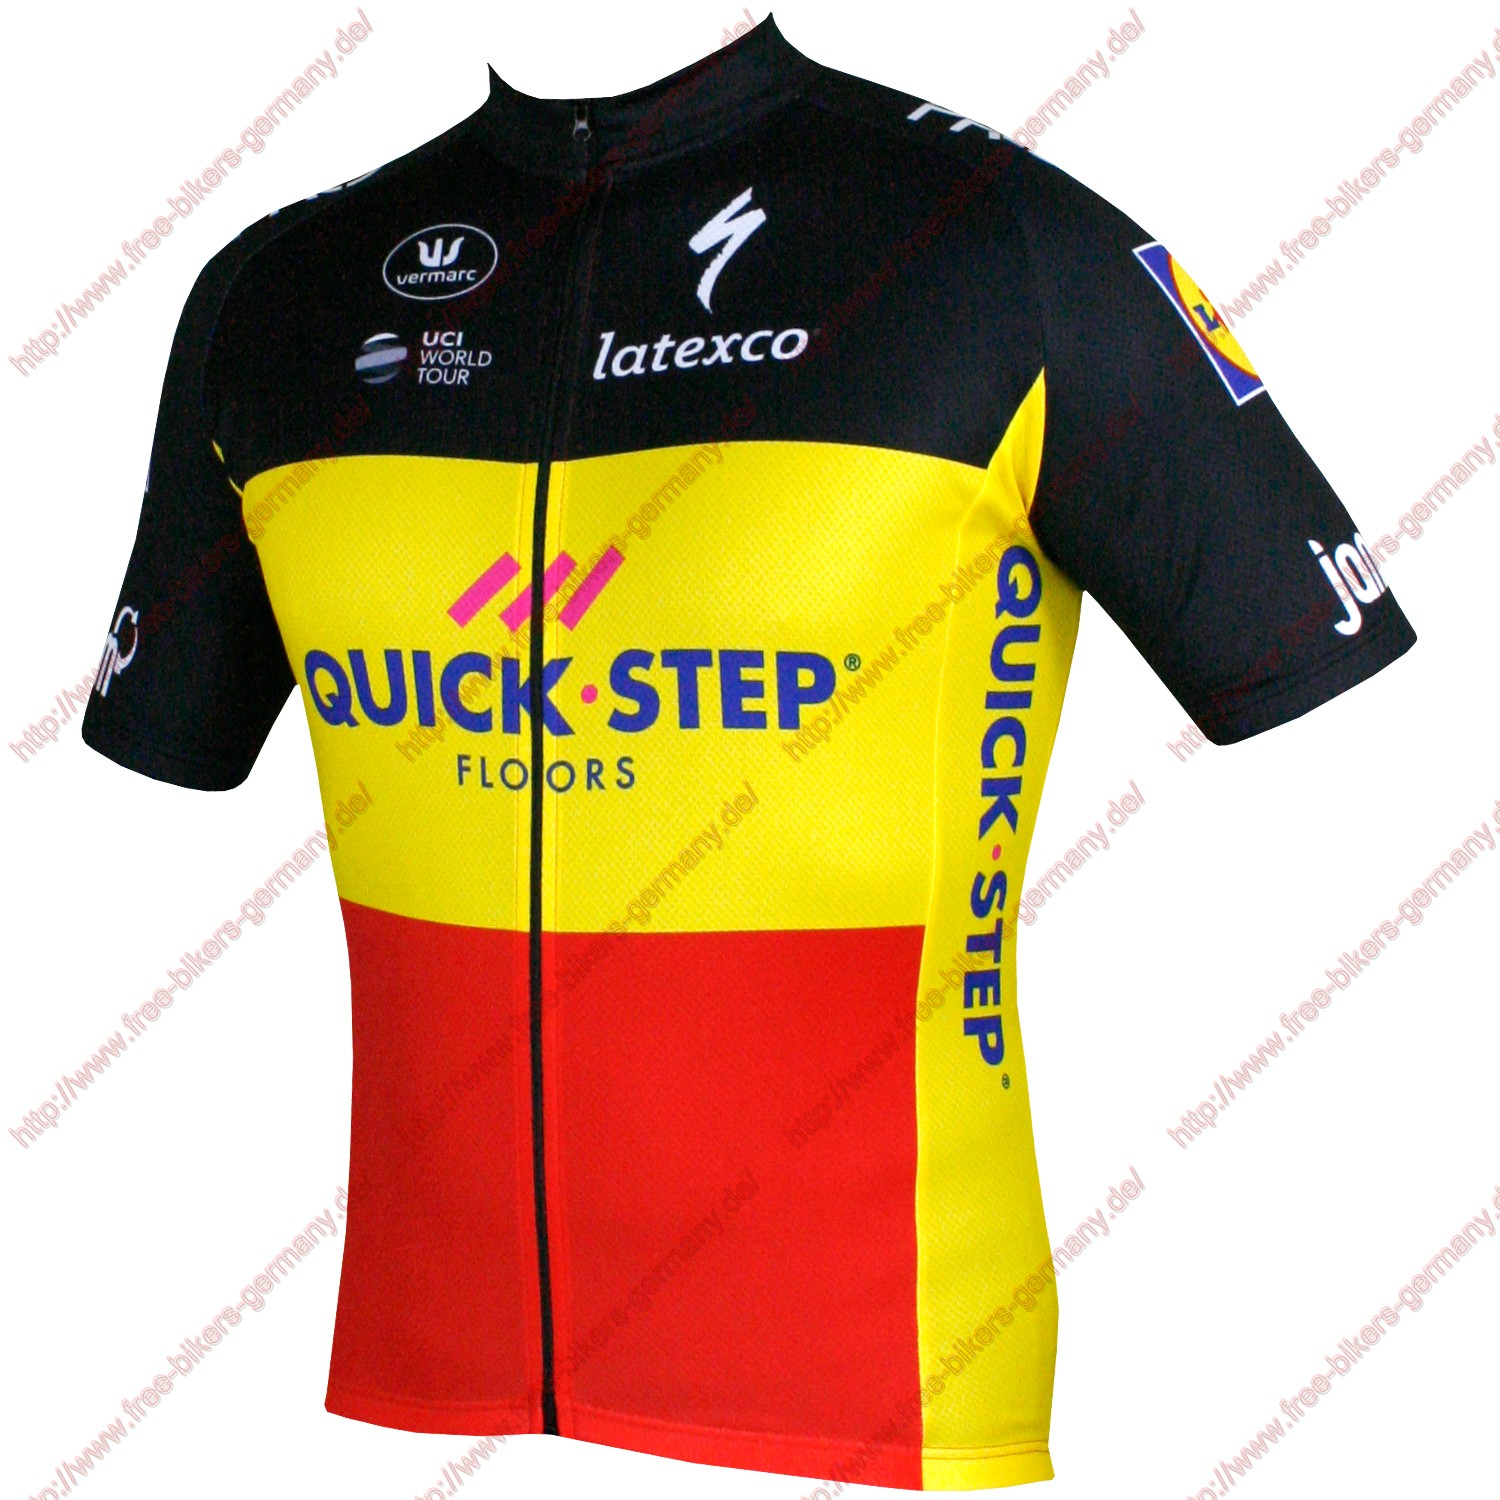 Radsport Quick Step Floors Belgium Champion 2018 Trikot Kurzarm